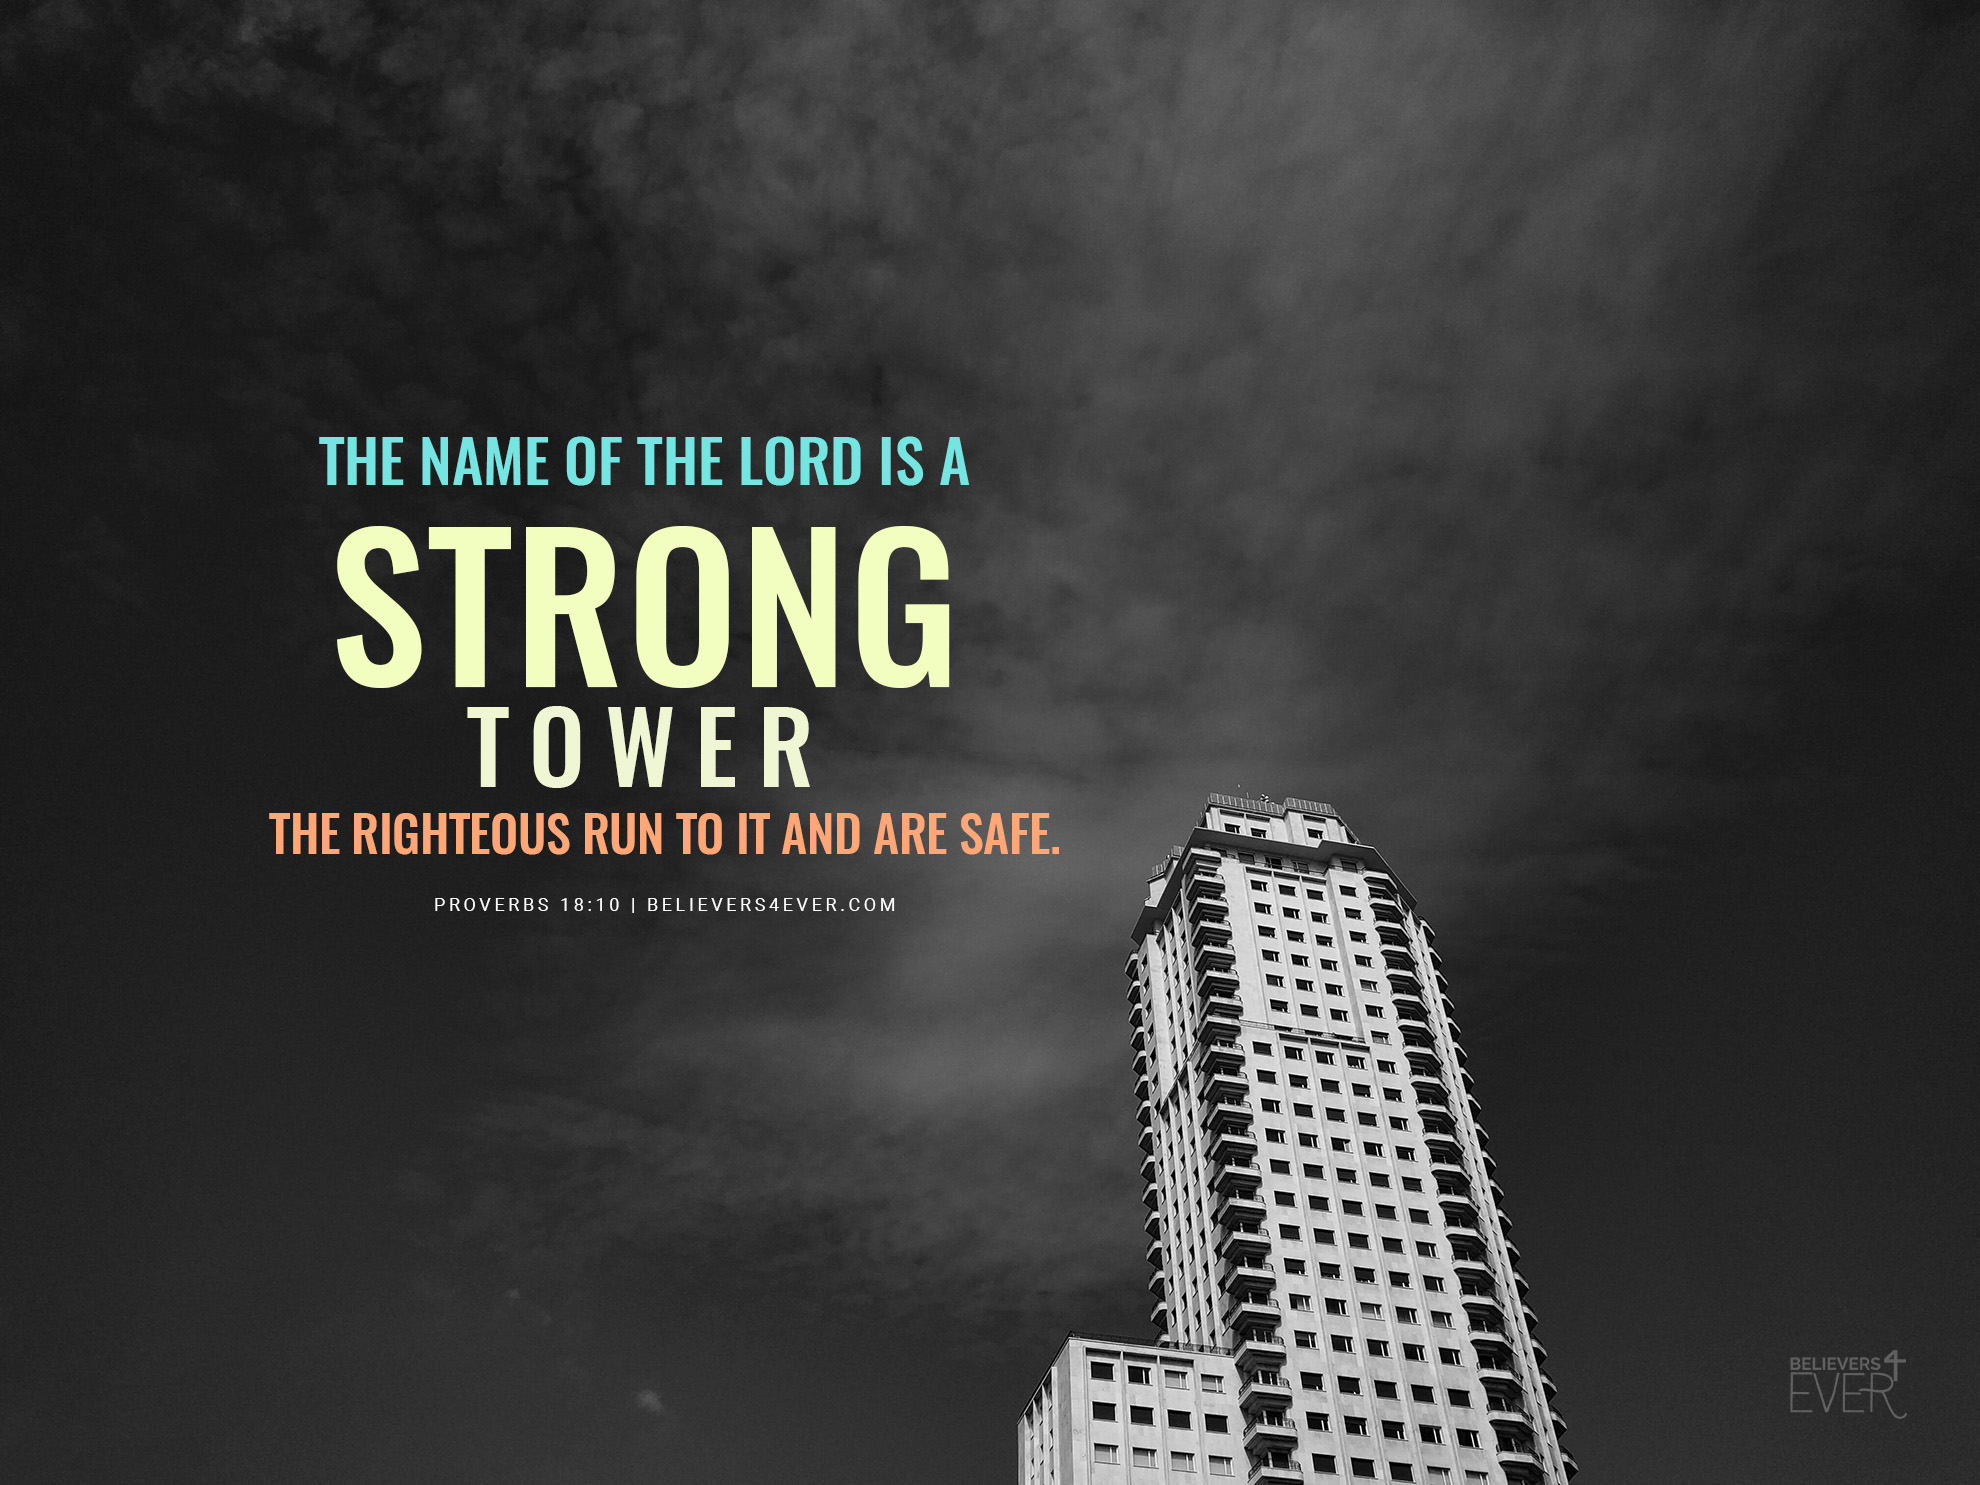 The name of the Lord is a strong tower. The righteous run to it and are safe. Proverbs 18:10.